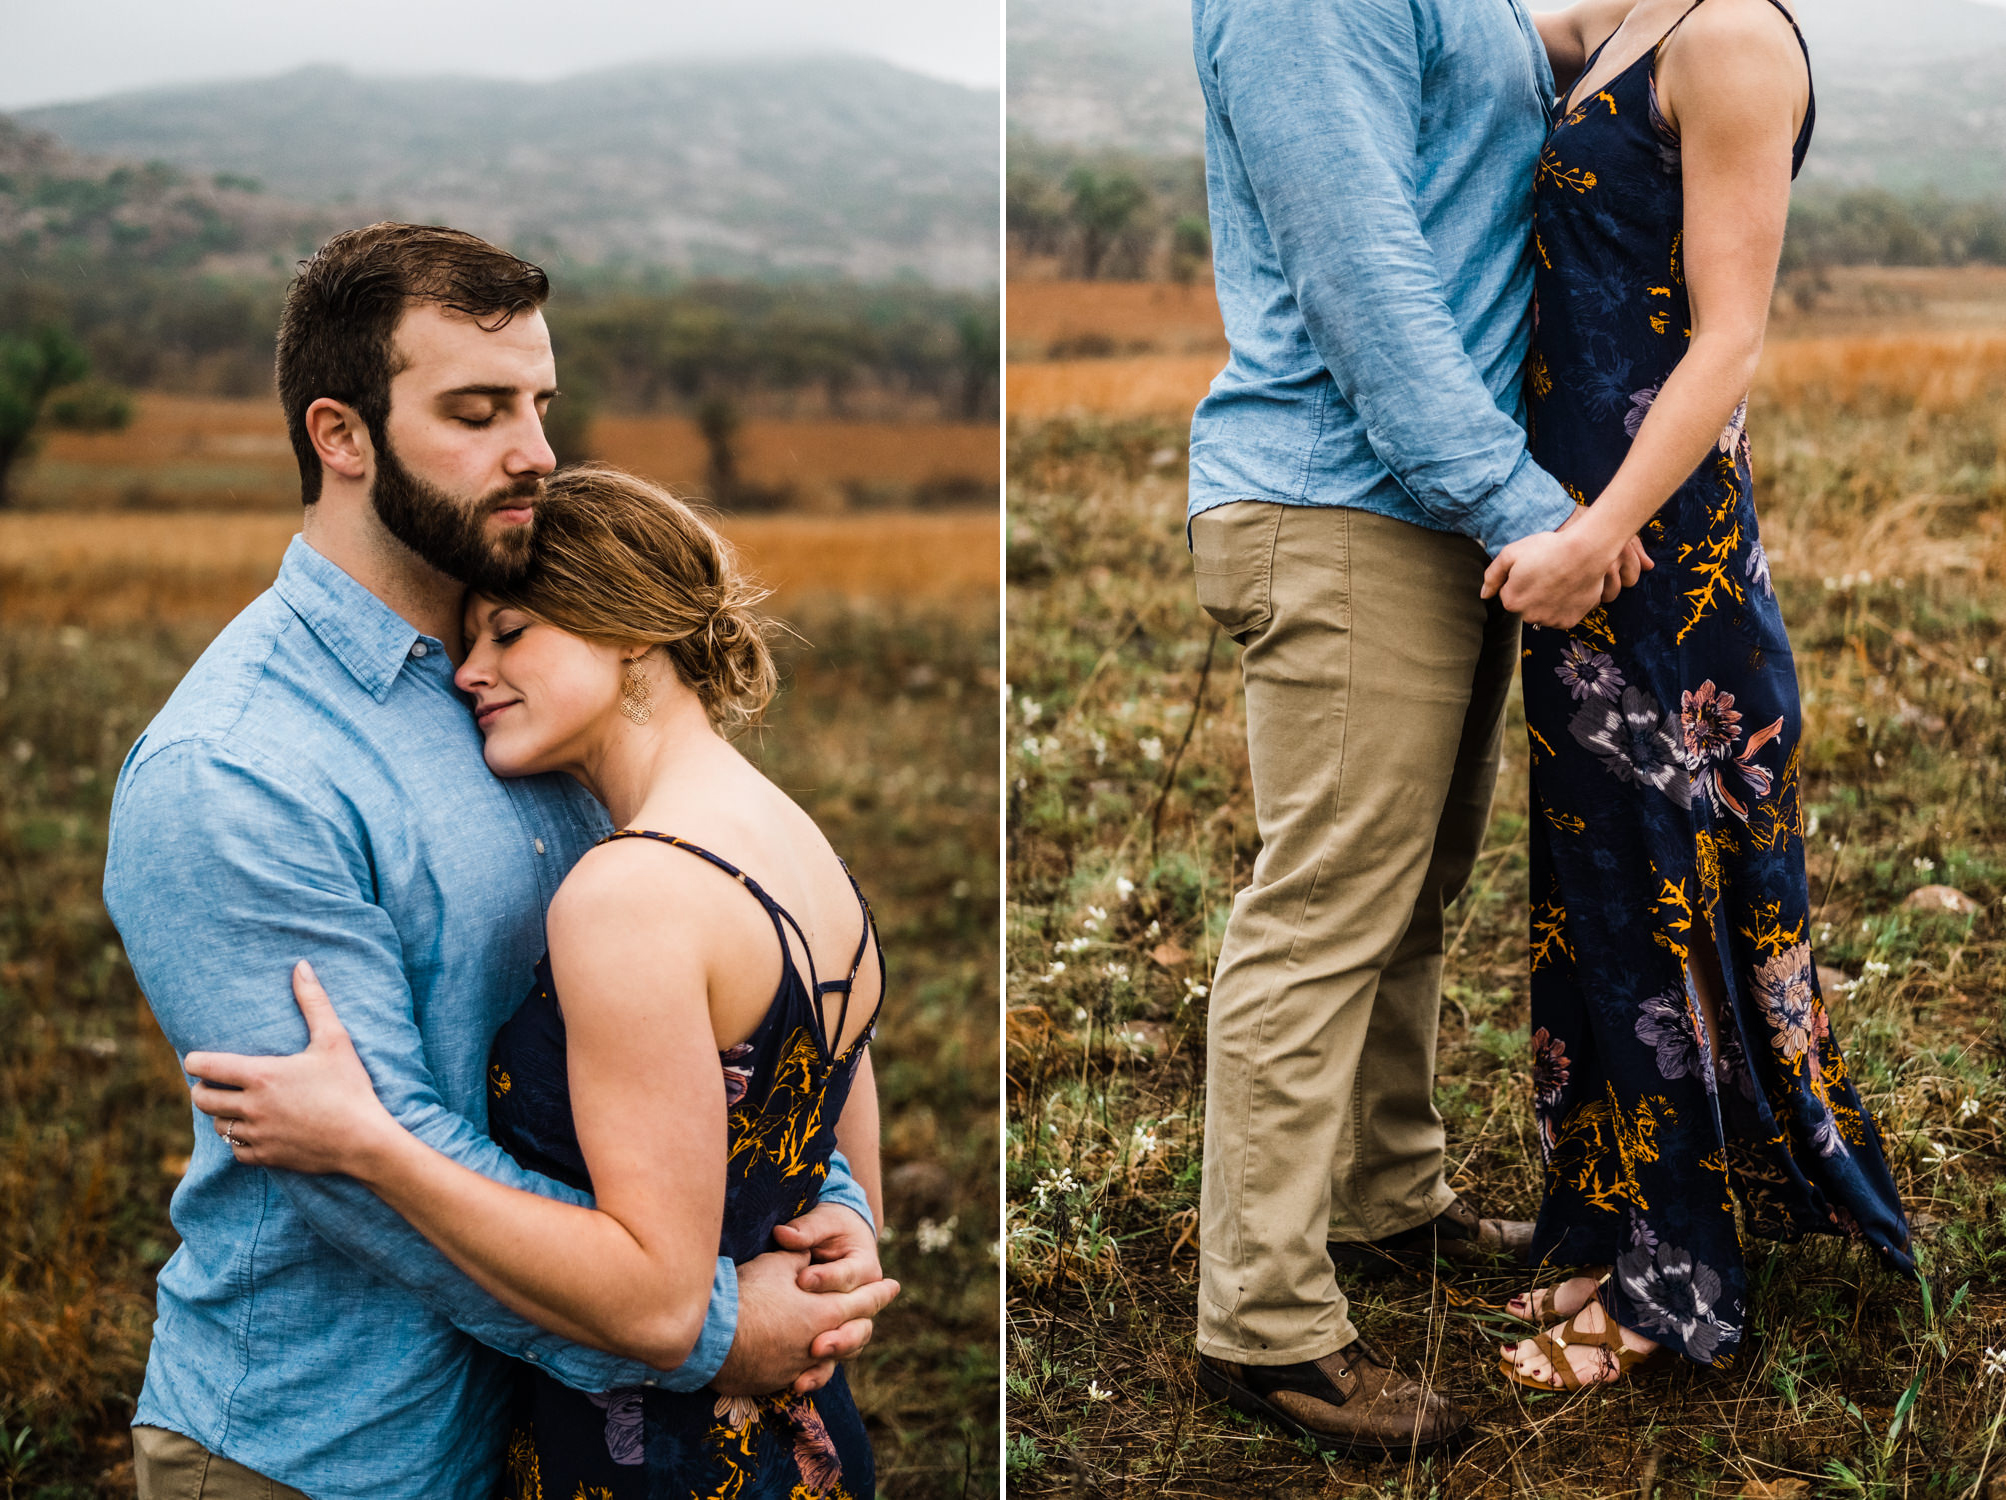 Oklahoma Engagement-Neal Dieker-Oklahoma Wedding Photography-Wichita Mountains-Wichita, Kansas Portrait Photographer-178.jpg